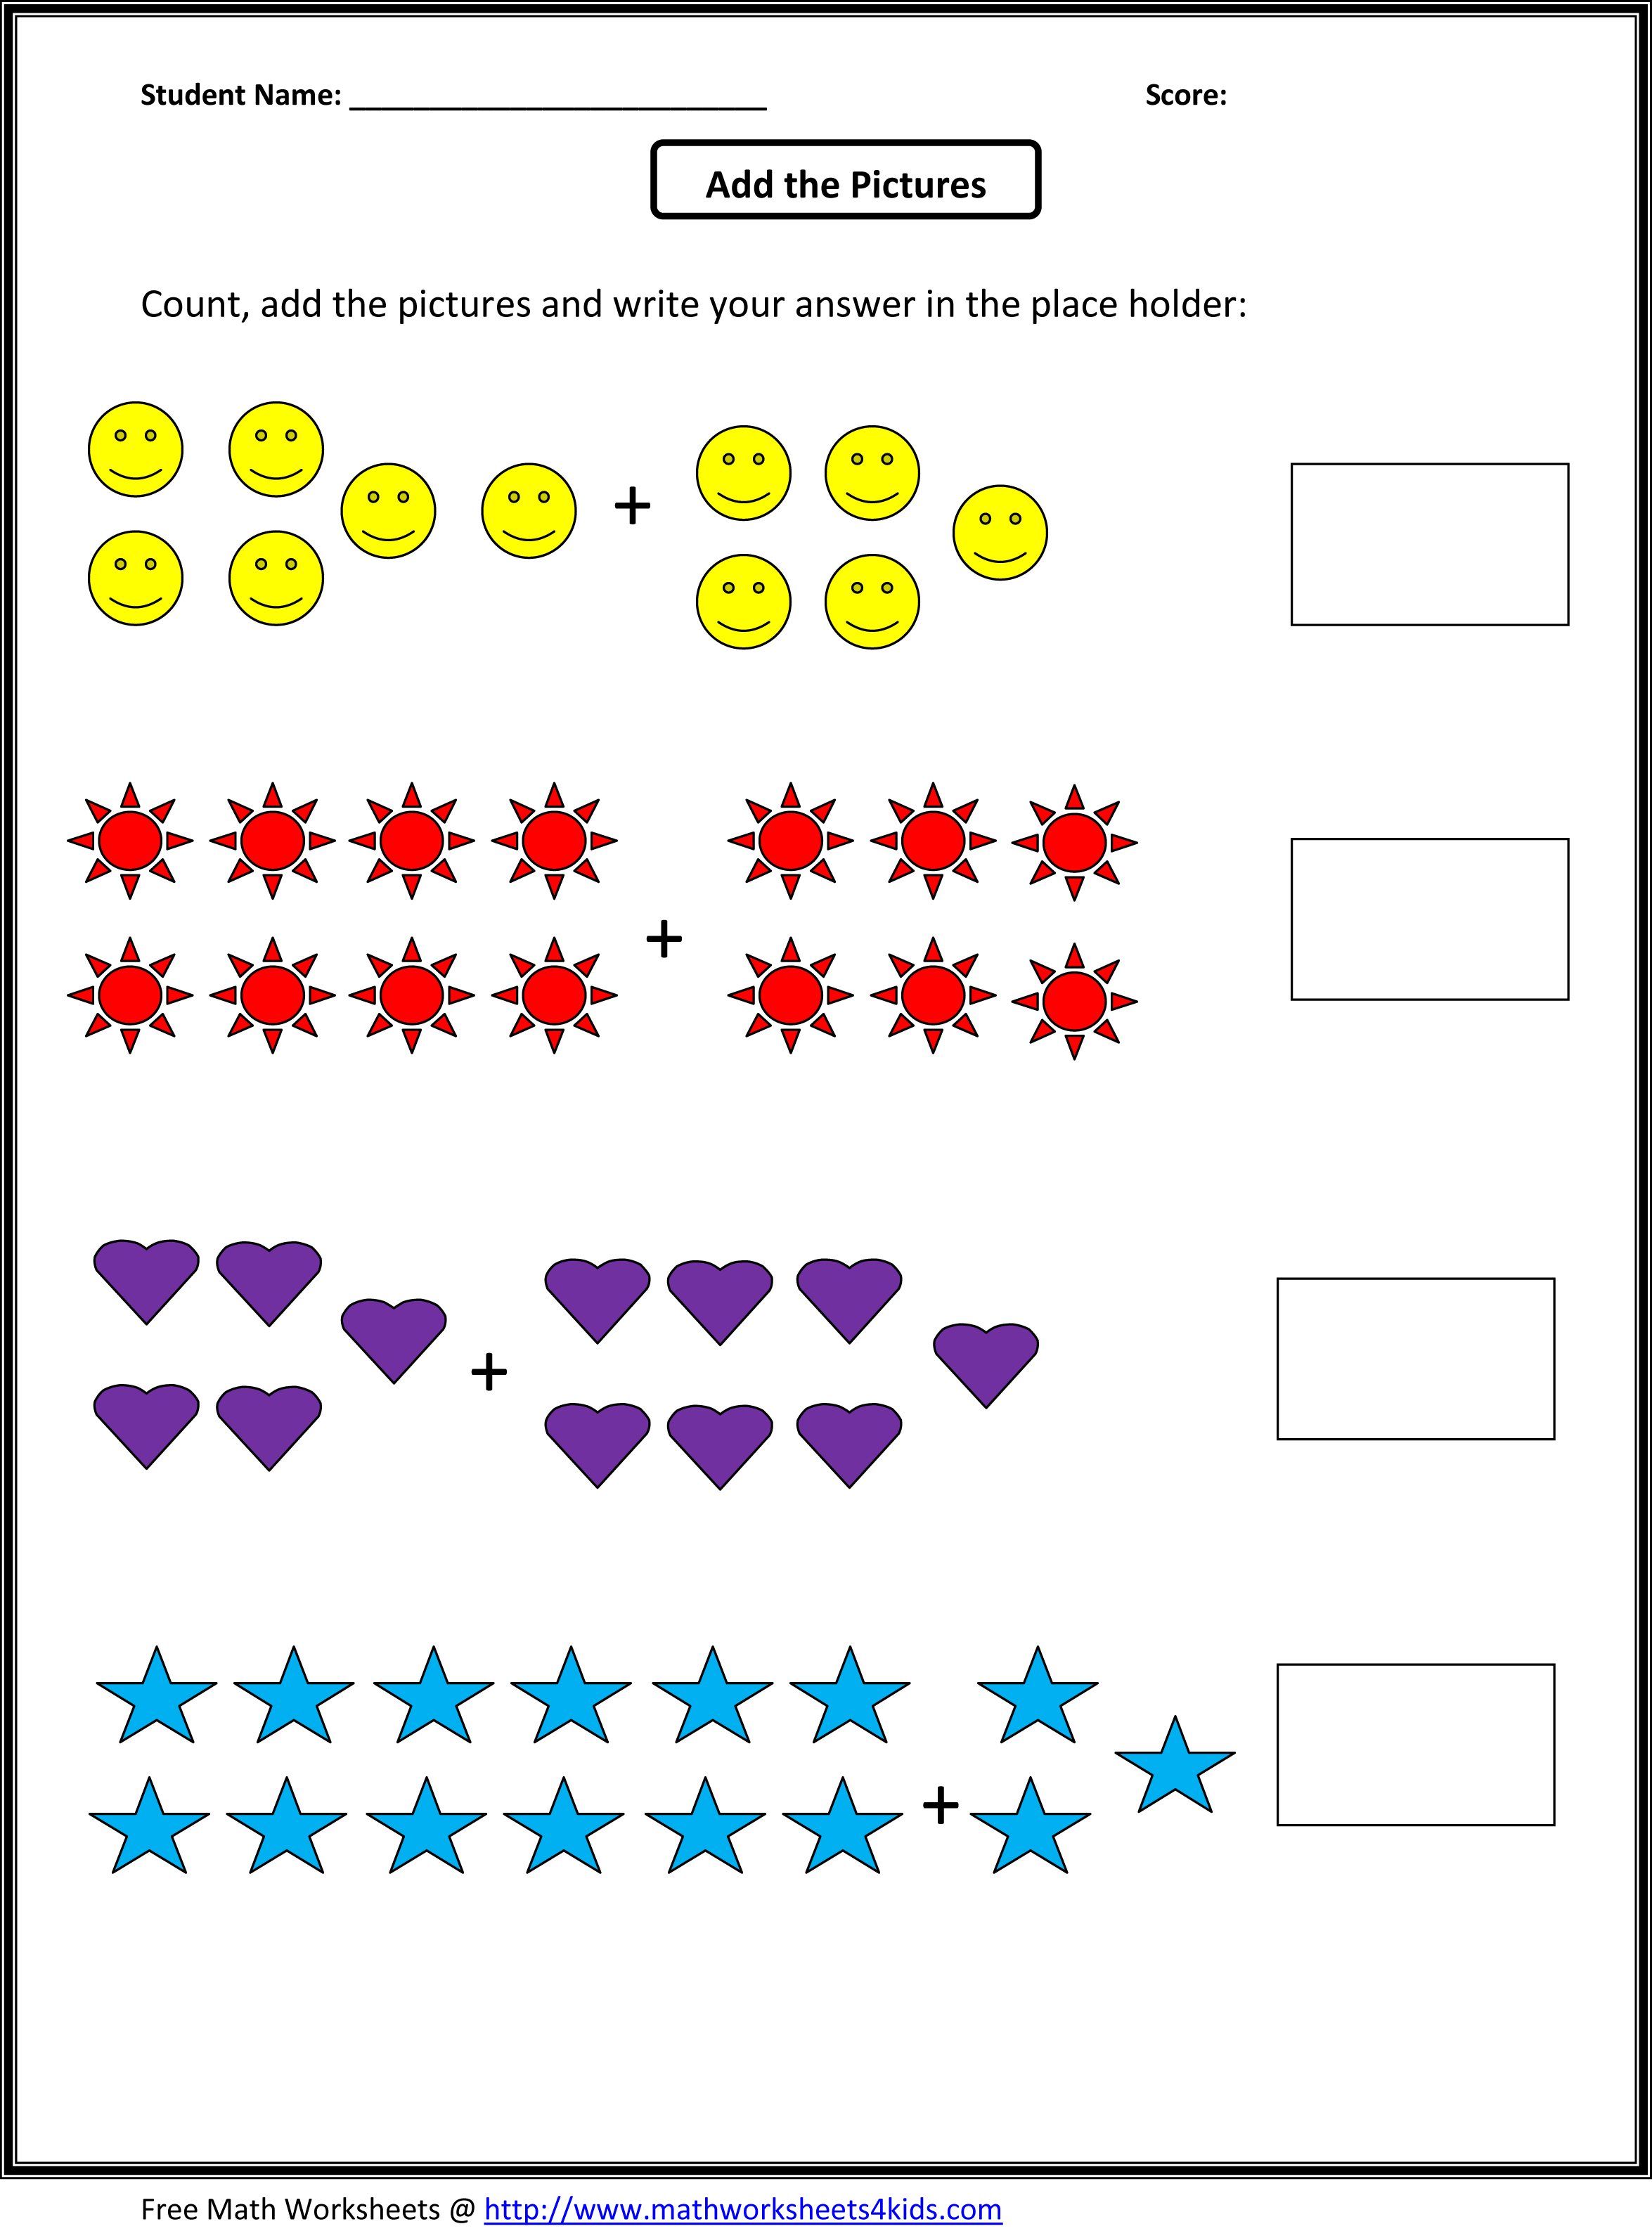 Proatmealus  Stunning Grade  Maths Worksheet  Reocurent With Licious Math Worksheets For St Grade Free  Reocurent With Nice Lcm Worksheets For Grade  Also Fill In The Letters Worksheets In Addition Free Printable Worksheets For Year  And Halloween Worksheets Printable As Well As Free Line Graph Worksheets Additionally Mulan Worksheets From Reocurentcom With Proatmealus  Licious Grade  Maths Worksheet  Reocurent With Nice Math Worksheets For St Grade Free  Reocurent And Stunning Lcm Worksheets For Grade  Also Fill In The Letters Worksheets In Addition Free Printable Worksheets For Year  From Reocurentcom